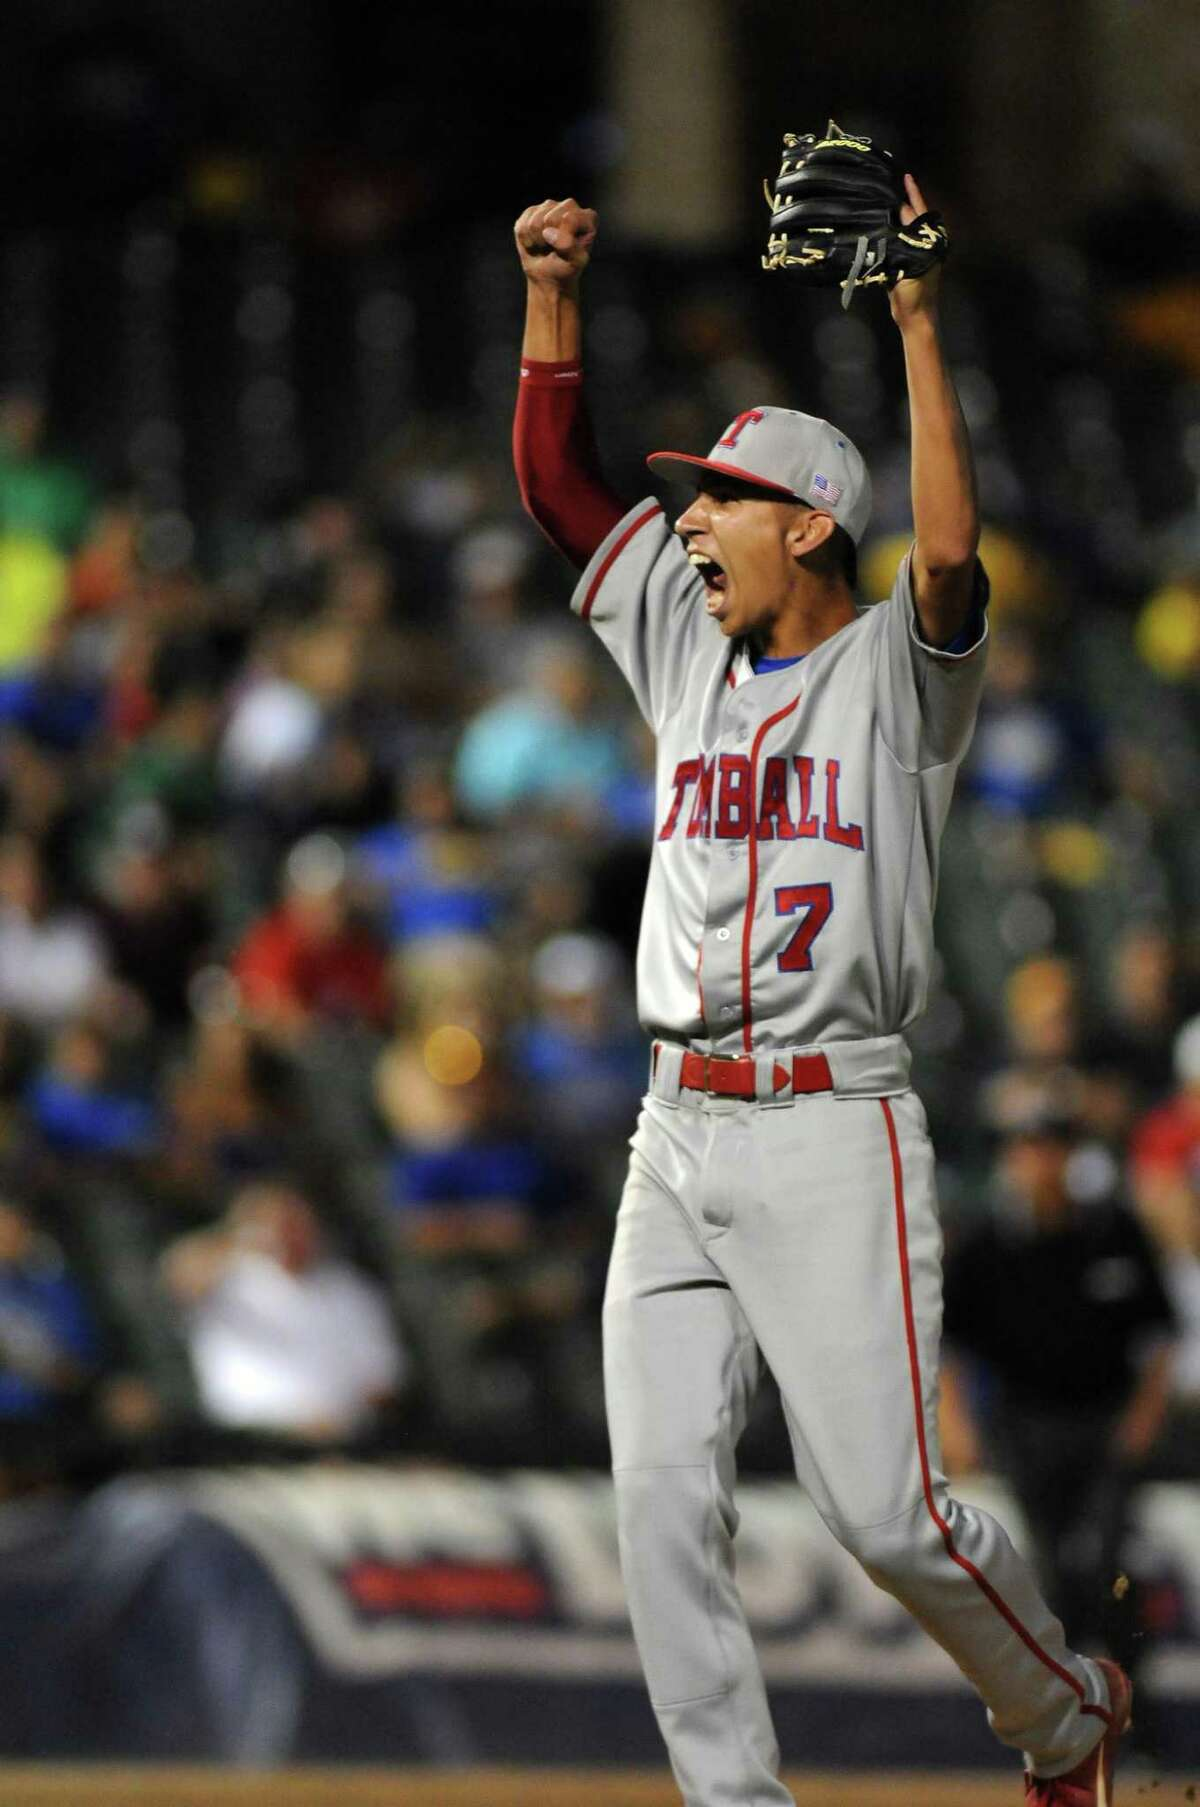 Tomball product Robert Dugger celebrates his strikeout to finish off the Corpus Christi Moody Trojans in the 2013 Class 4A UIL State Baseball Championship final at Dell Diamond in Round Rock..